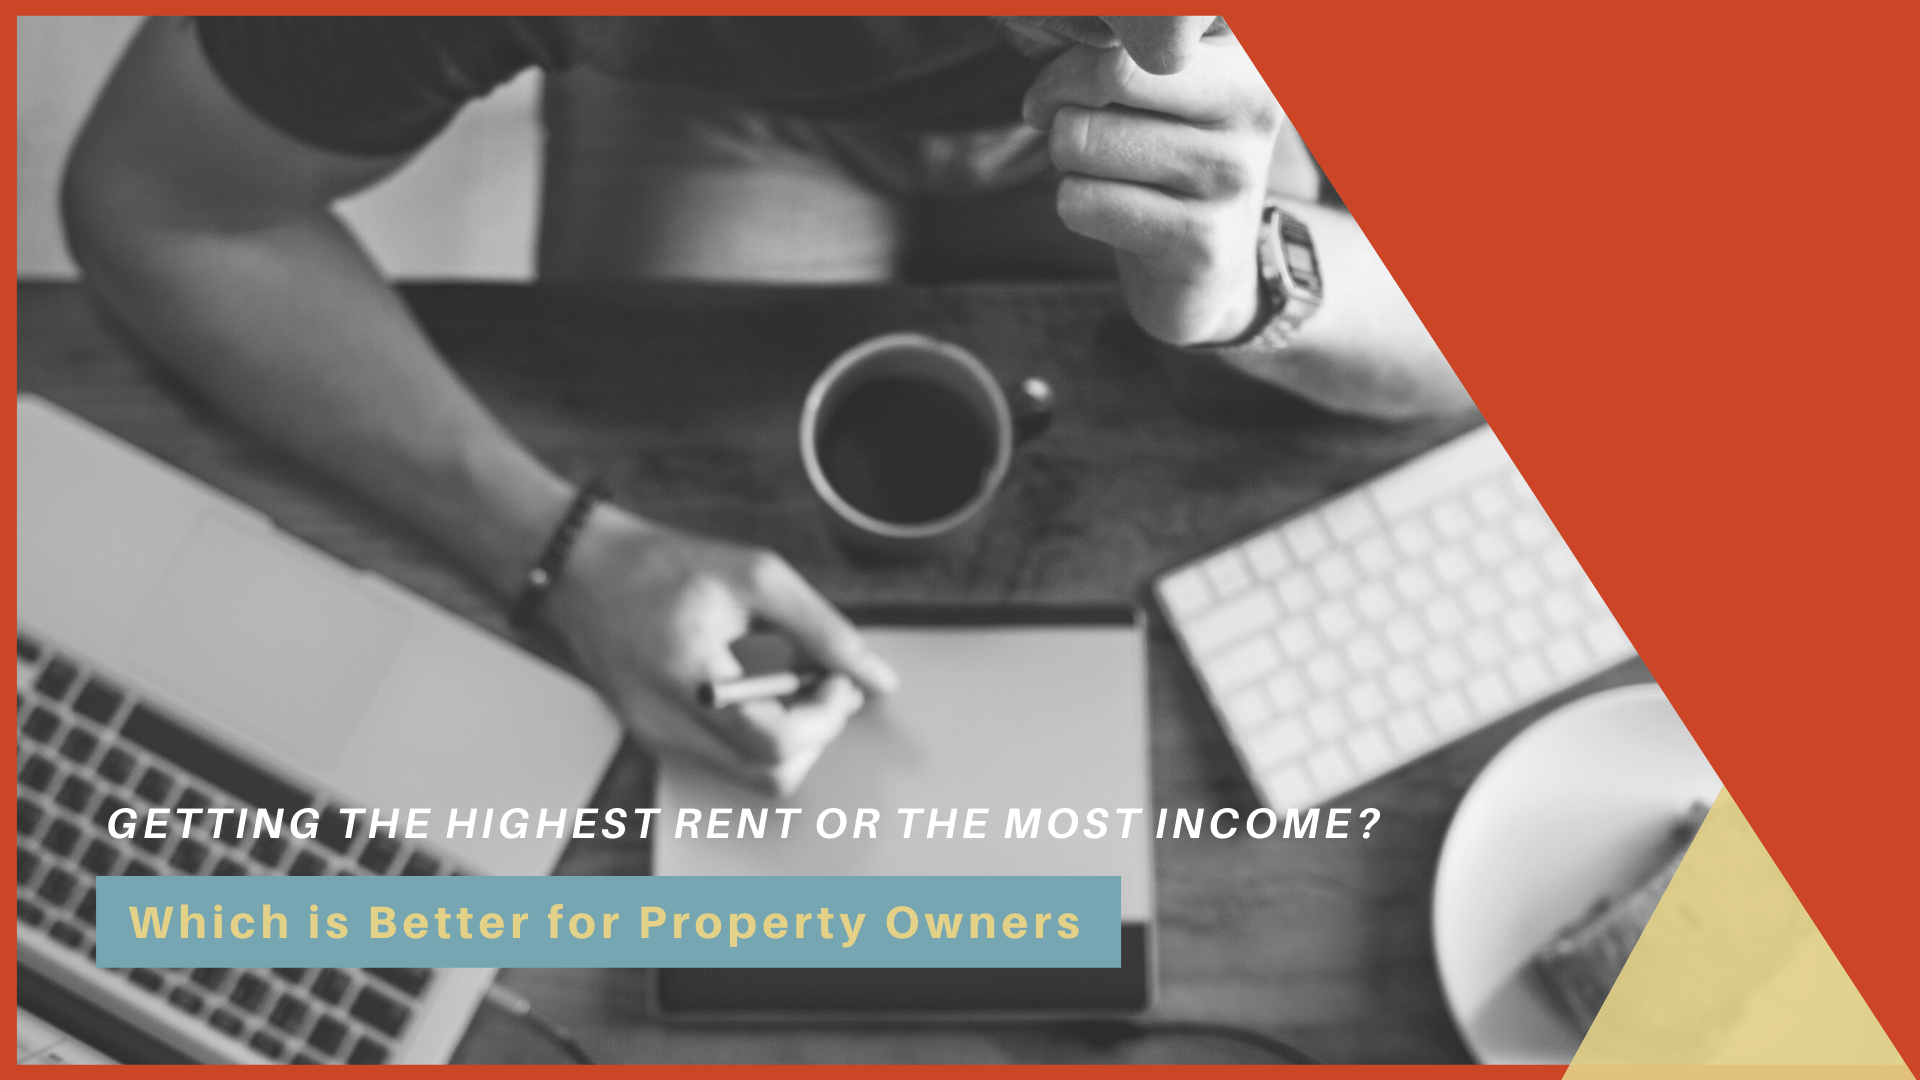 Which is Better for Property Owners: Getting the Highest Rent or the Most Income?